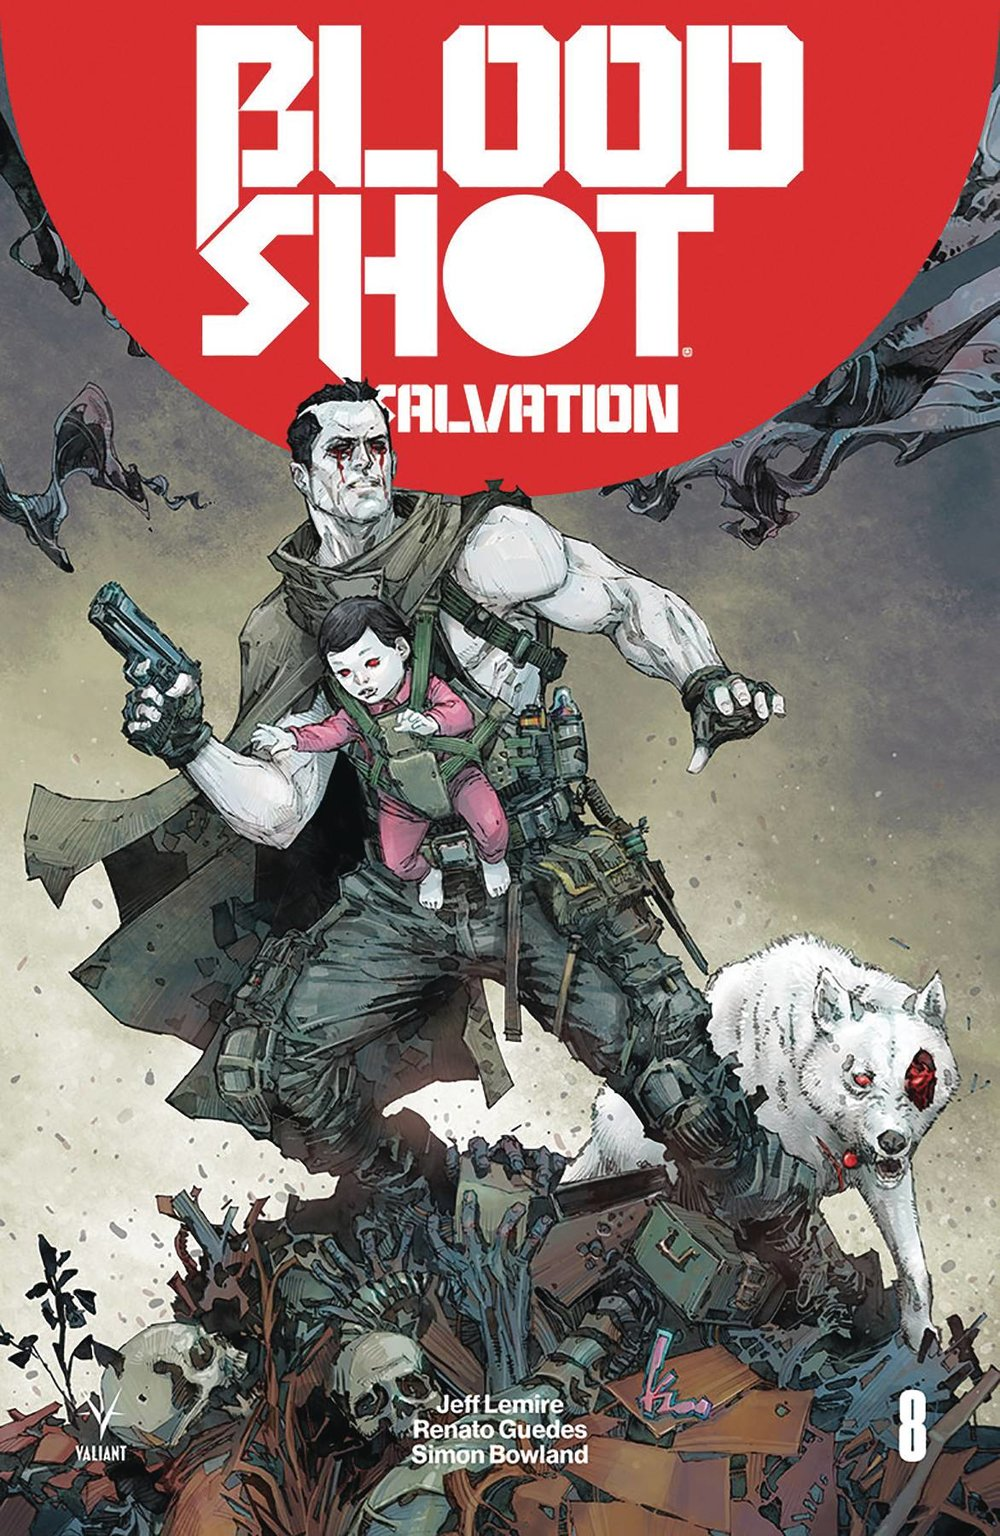 BLOODSHOT SALVATION 8 CVR A ROCAFORT.jpg